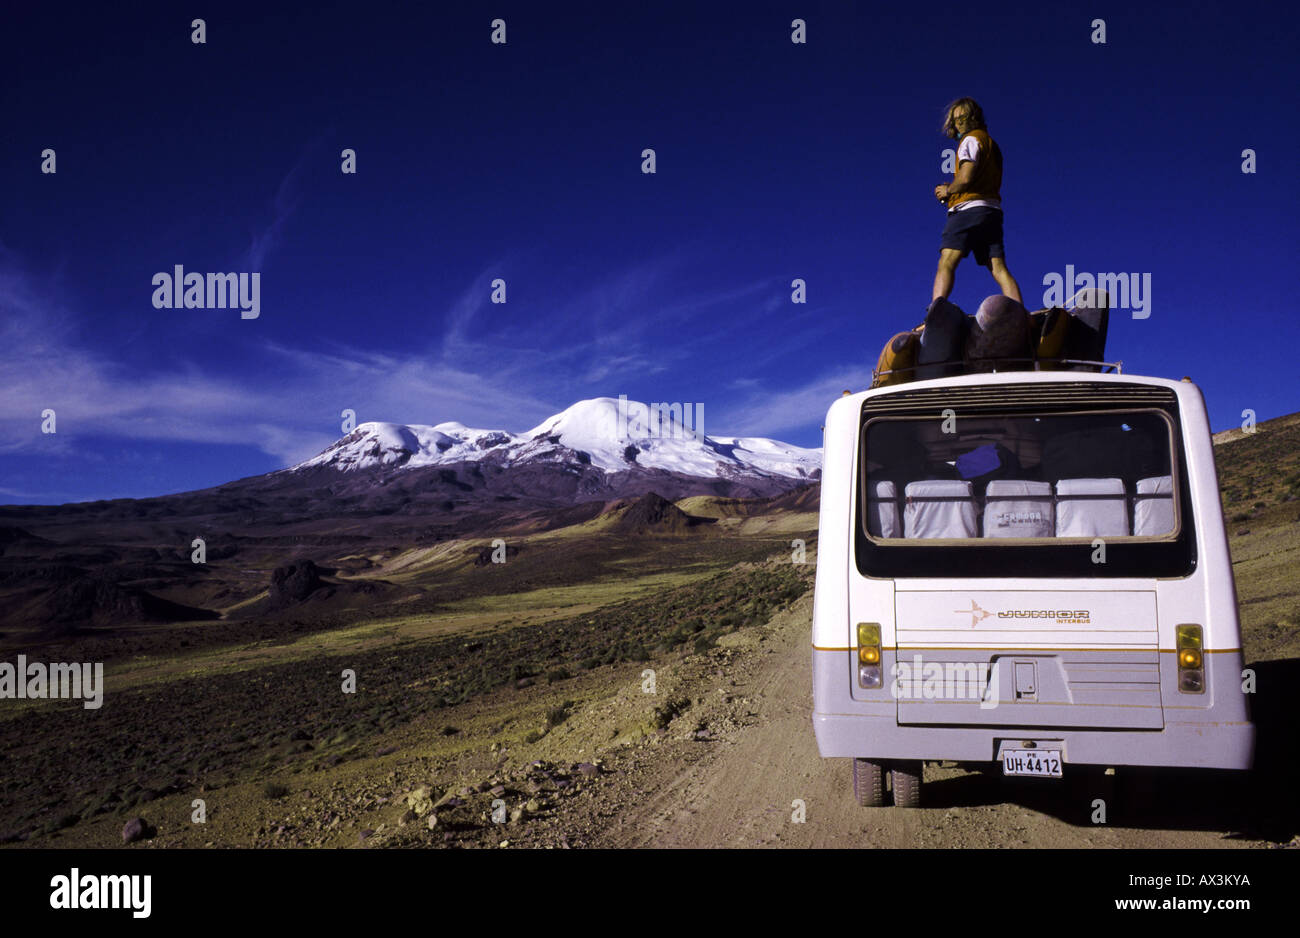 Kayaker looking out over Peru's Altiplano from the top of a bus, with snow-capped mountains in the background - Stock Image